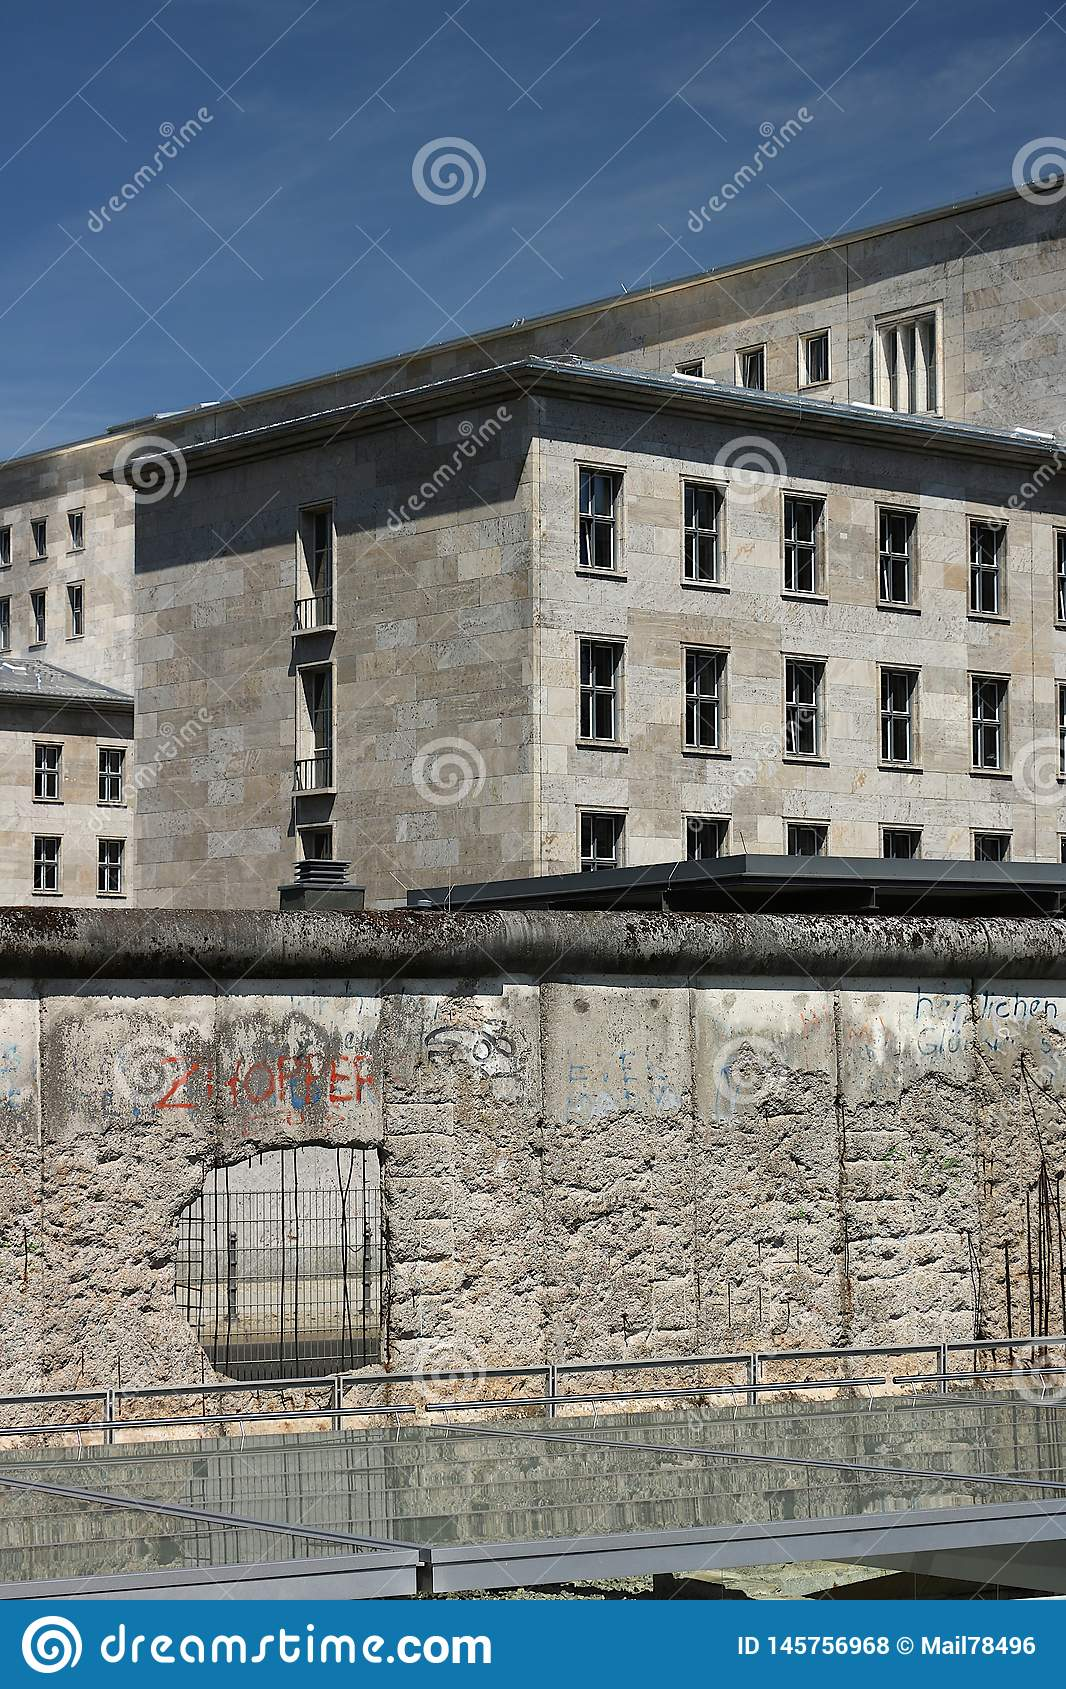 The Berlin Wall With The Background Of Old Buildings In West Berlin Stock Photo Image Of Outdoor East 145756968